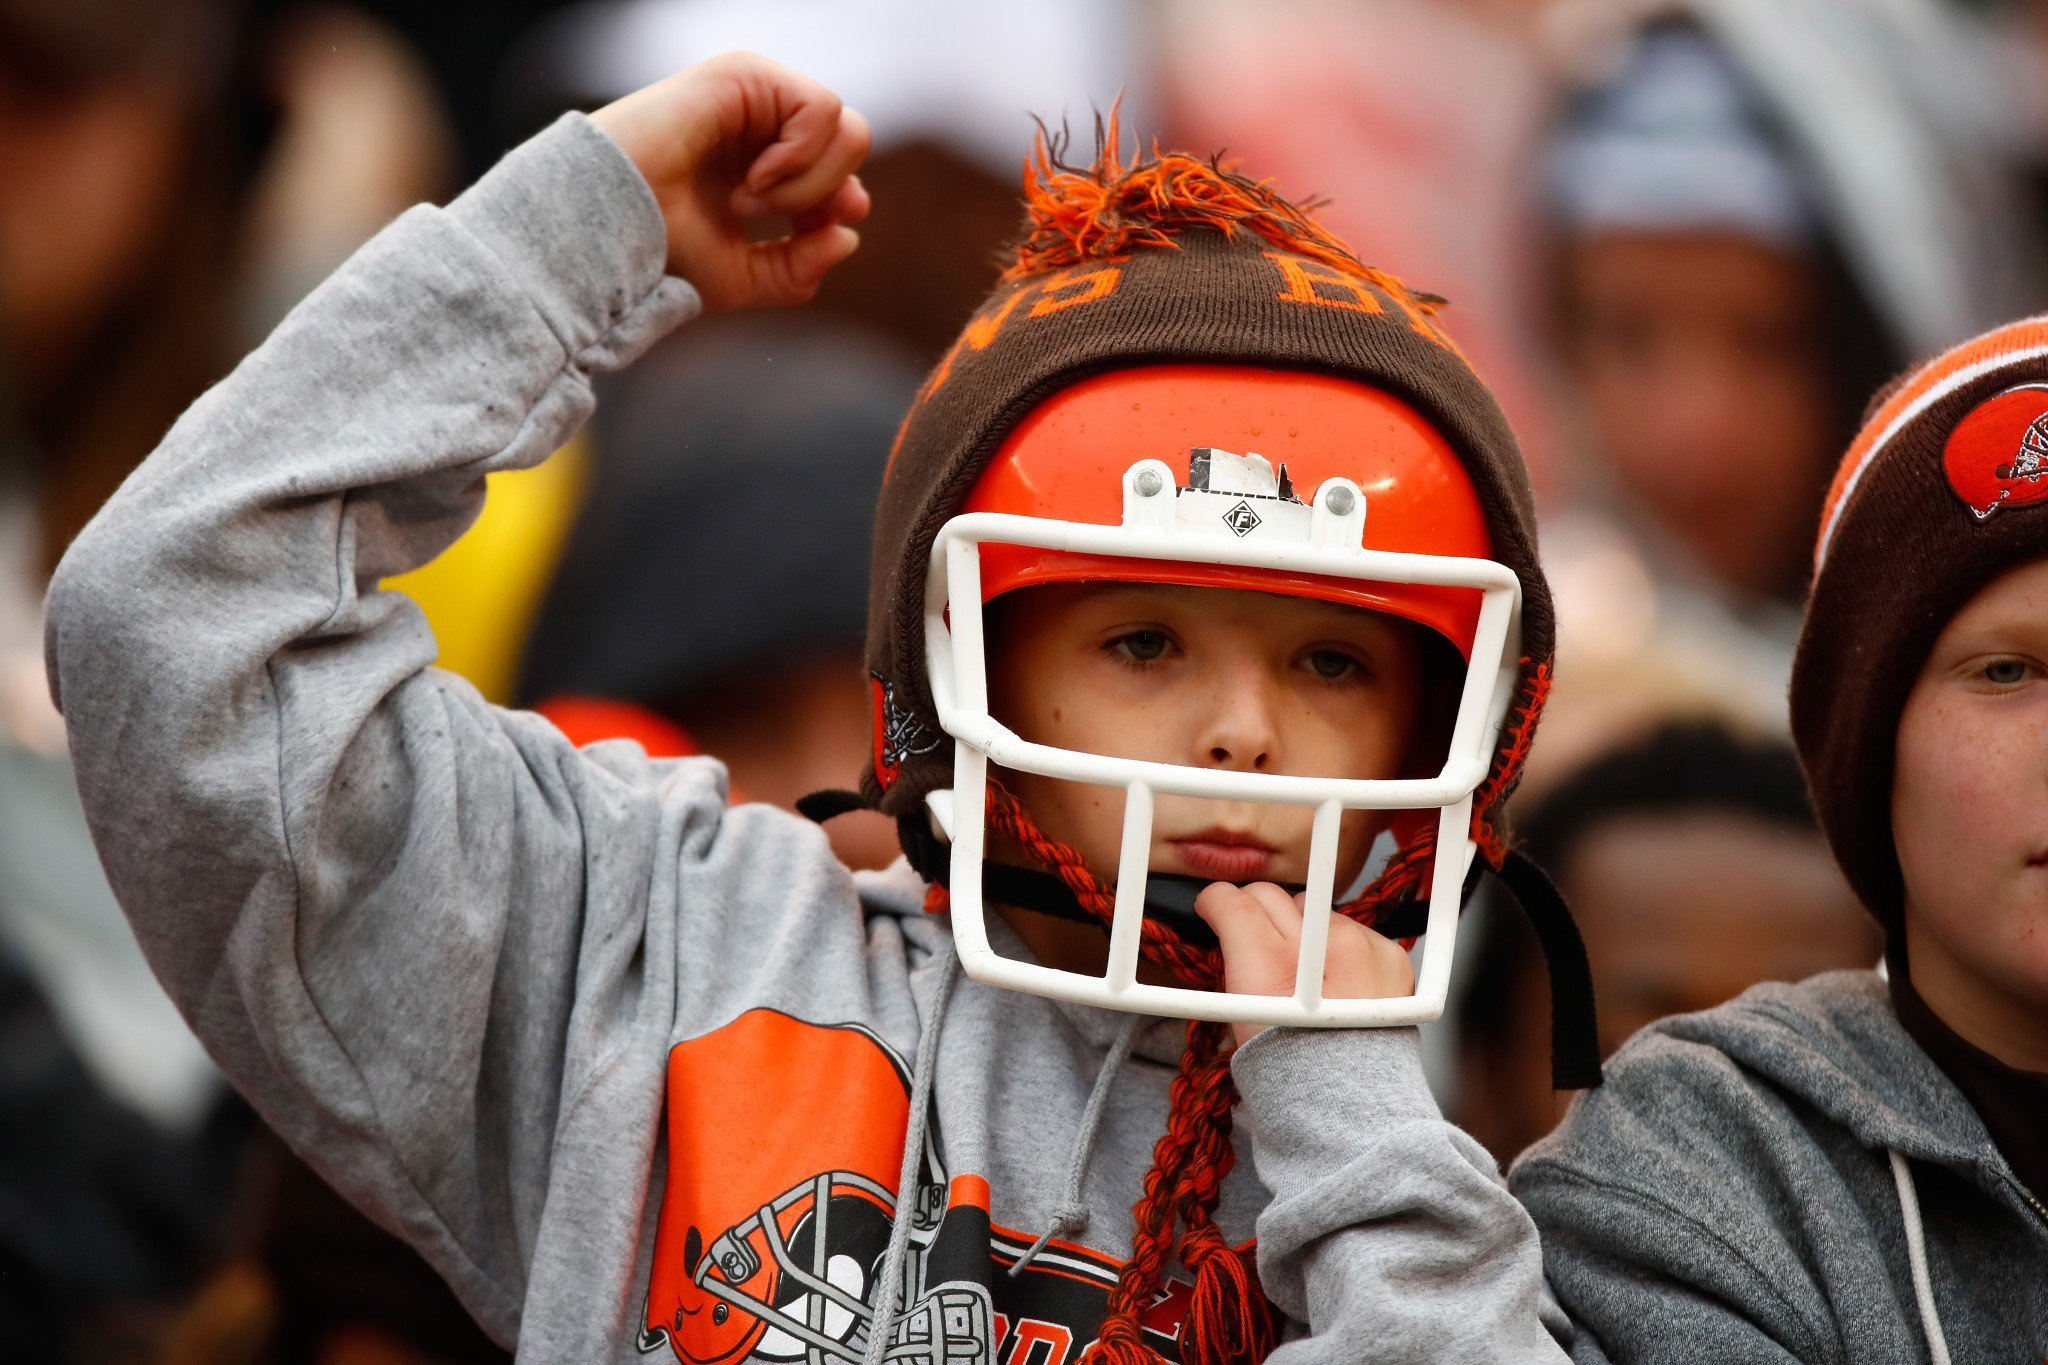 This young Cleveland Browns' fan's Christmas dreams might come true without breaking his parent's bank. (Getty Images)